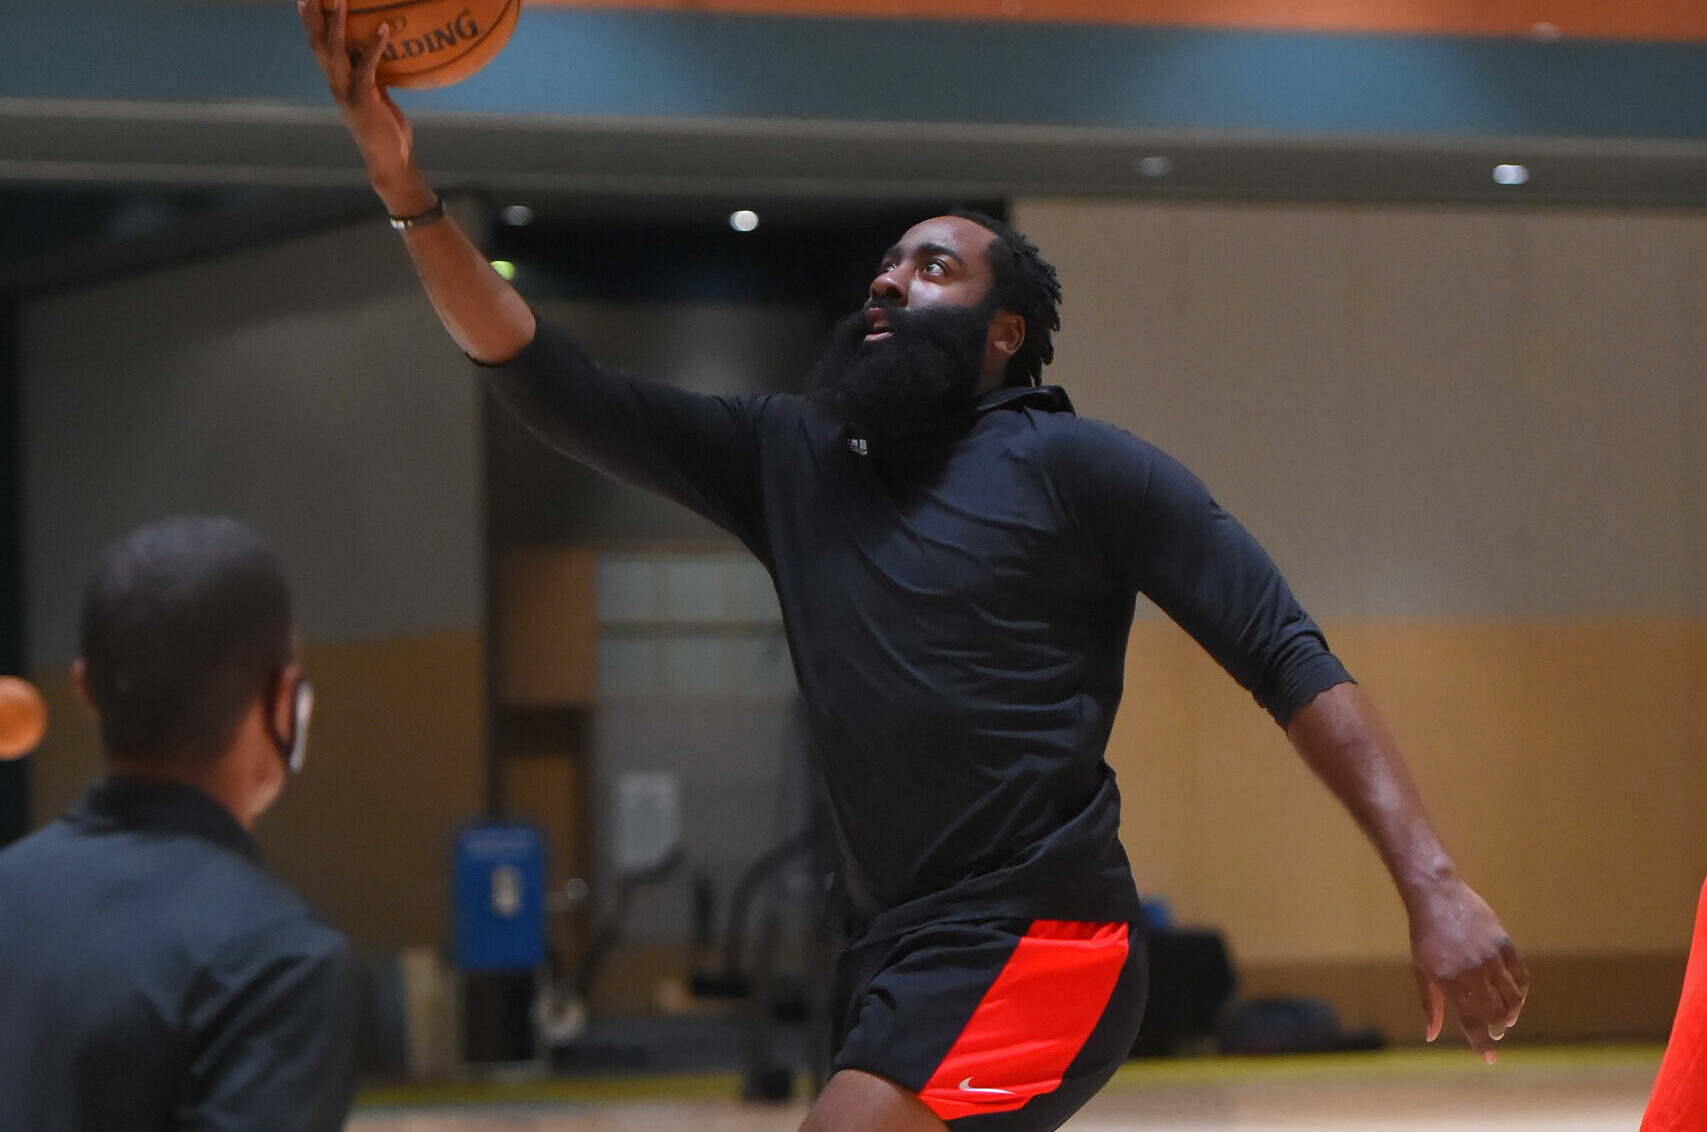 James Harden set to play Tuesday after returning to practice